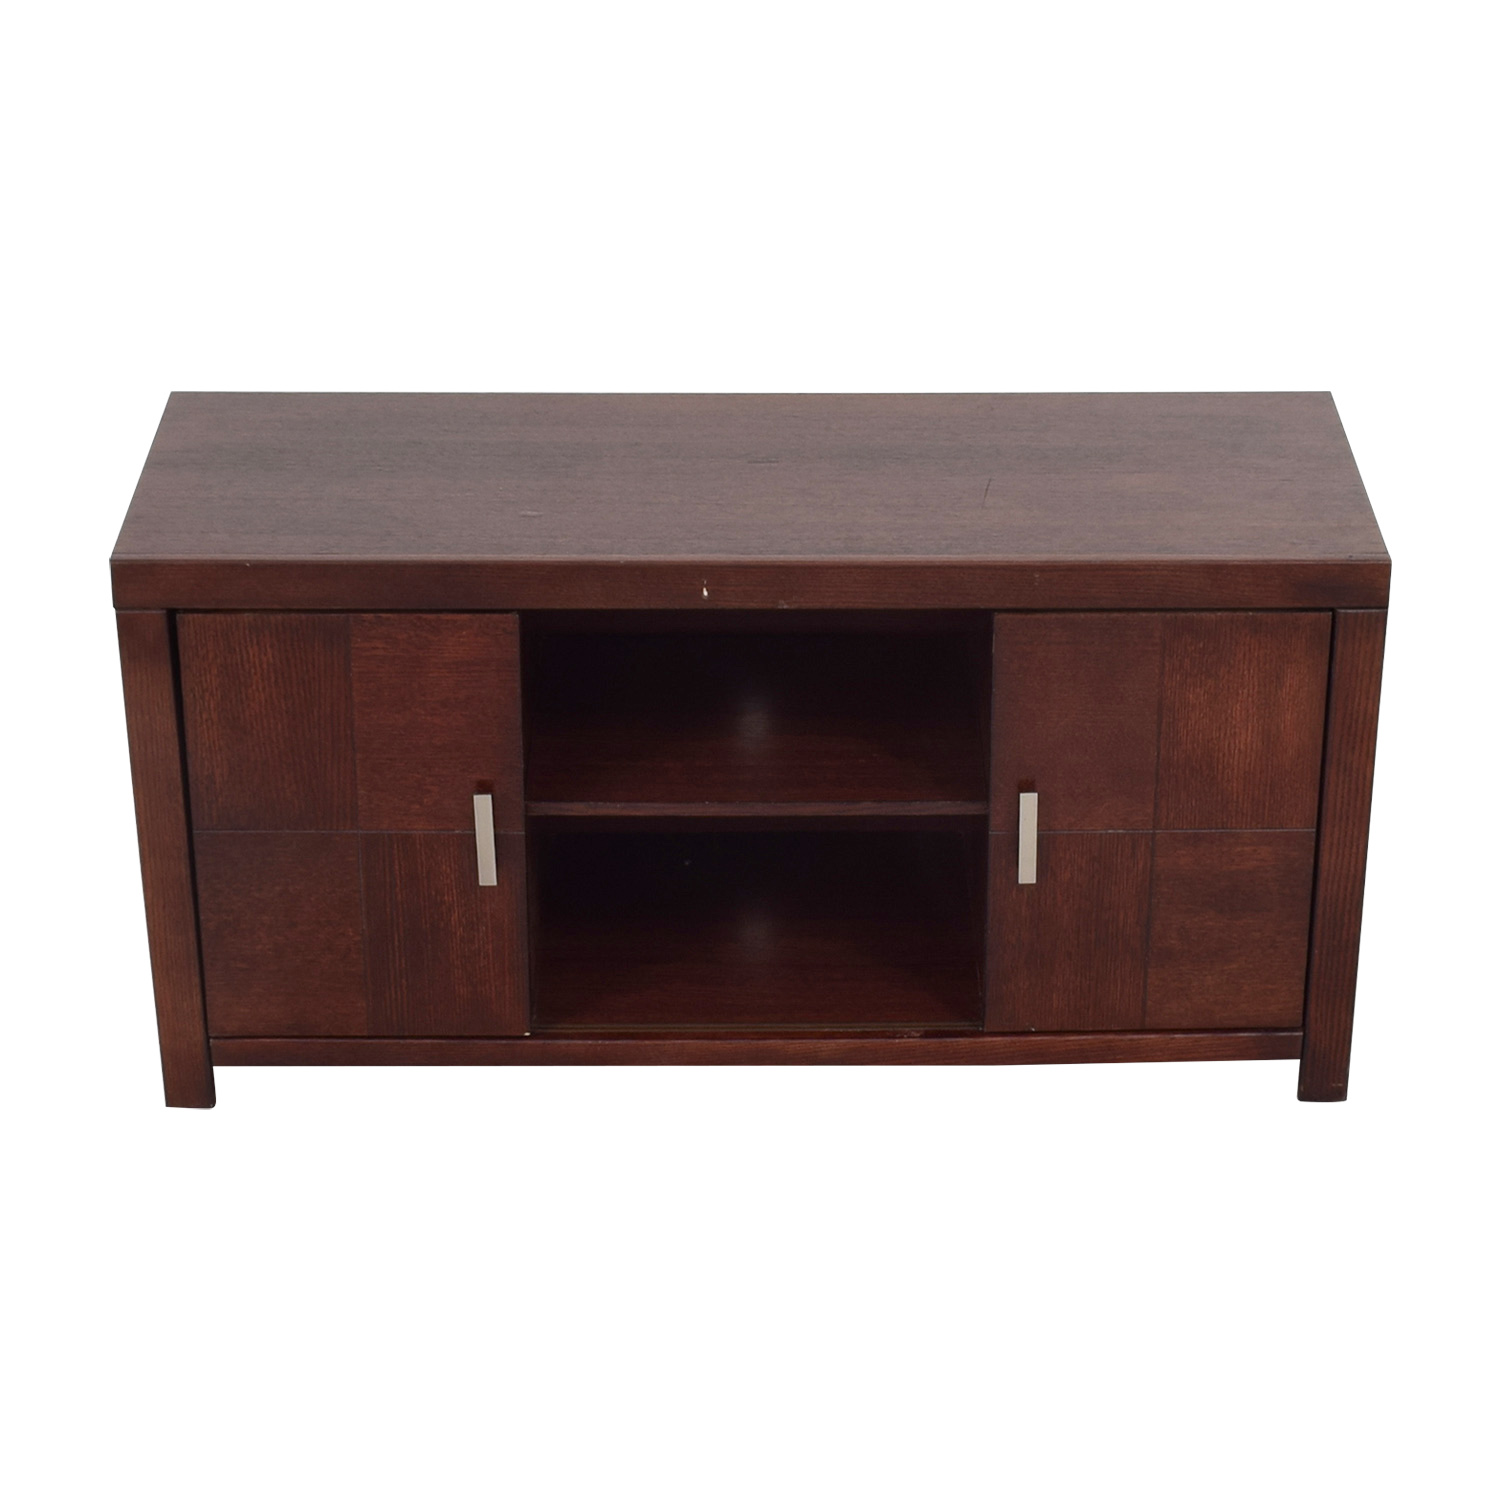 shop rooms to go tv stand rooms to go storage - Rooms To Go Tv Stands